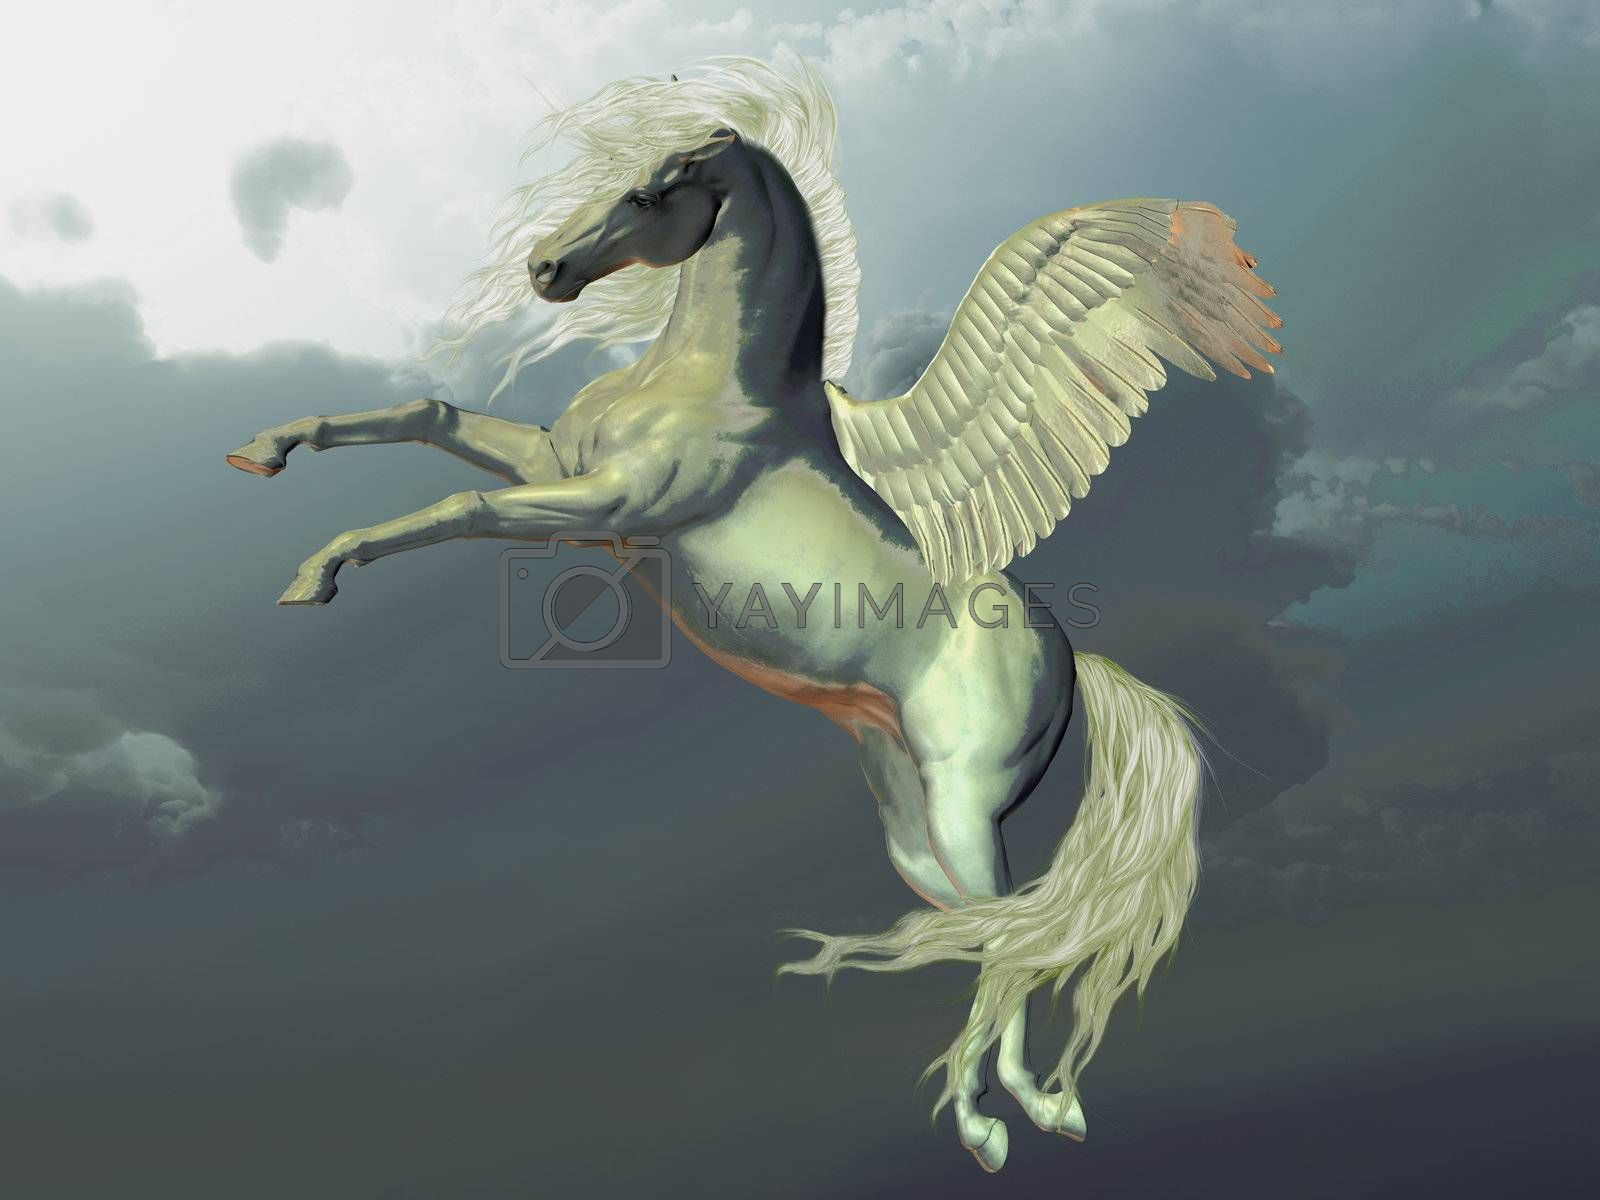 Ivory Pegasus flies up into the clouds above the Earth.